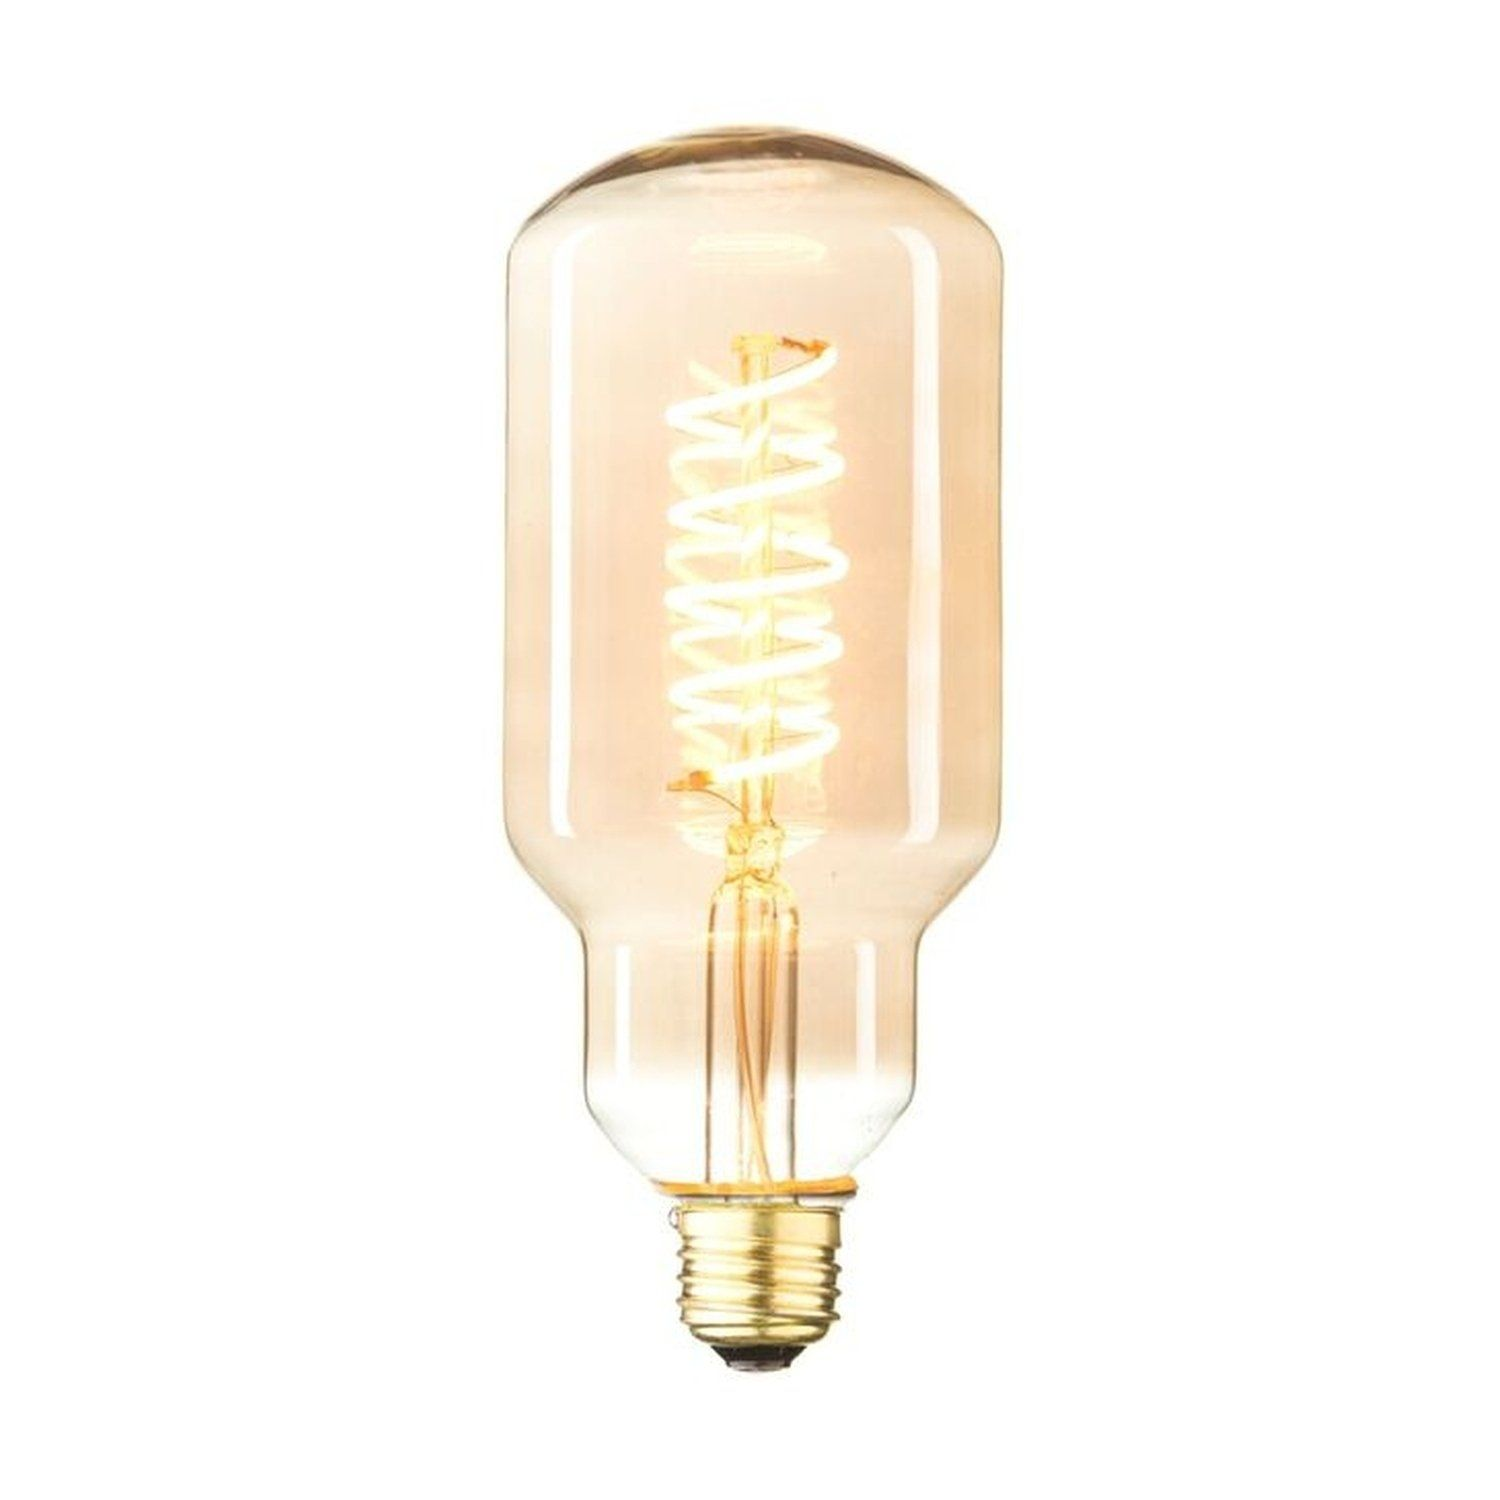 6 Watt Edison Style Vintage Oversize Led Light Bulb Clear Aspen Glass Vintage Light Bulbs Light Bulb Antique Light Bulbs